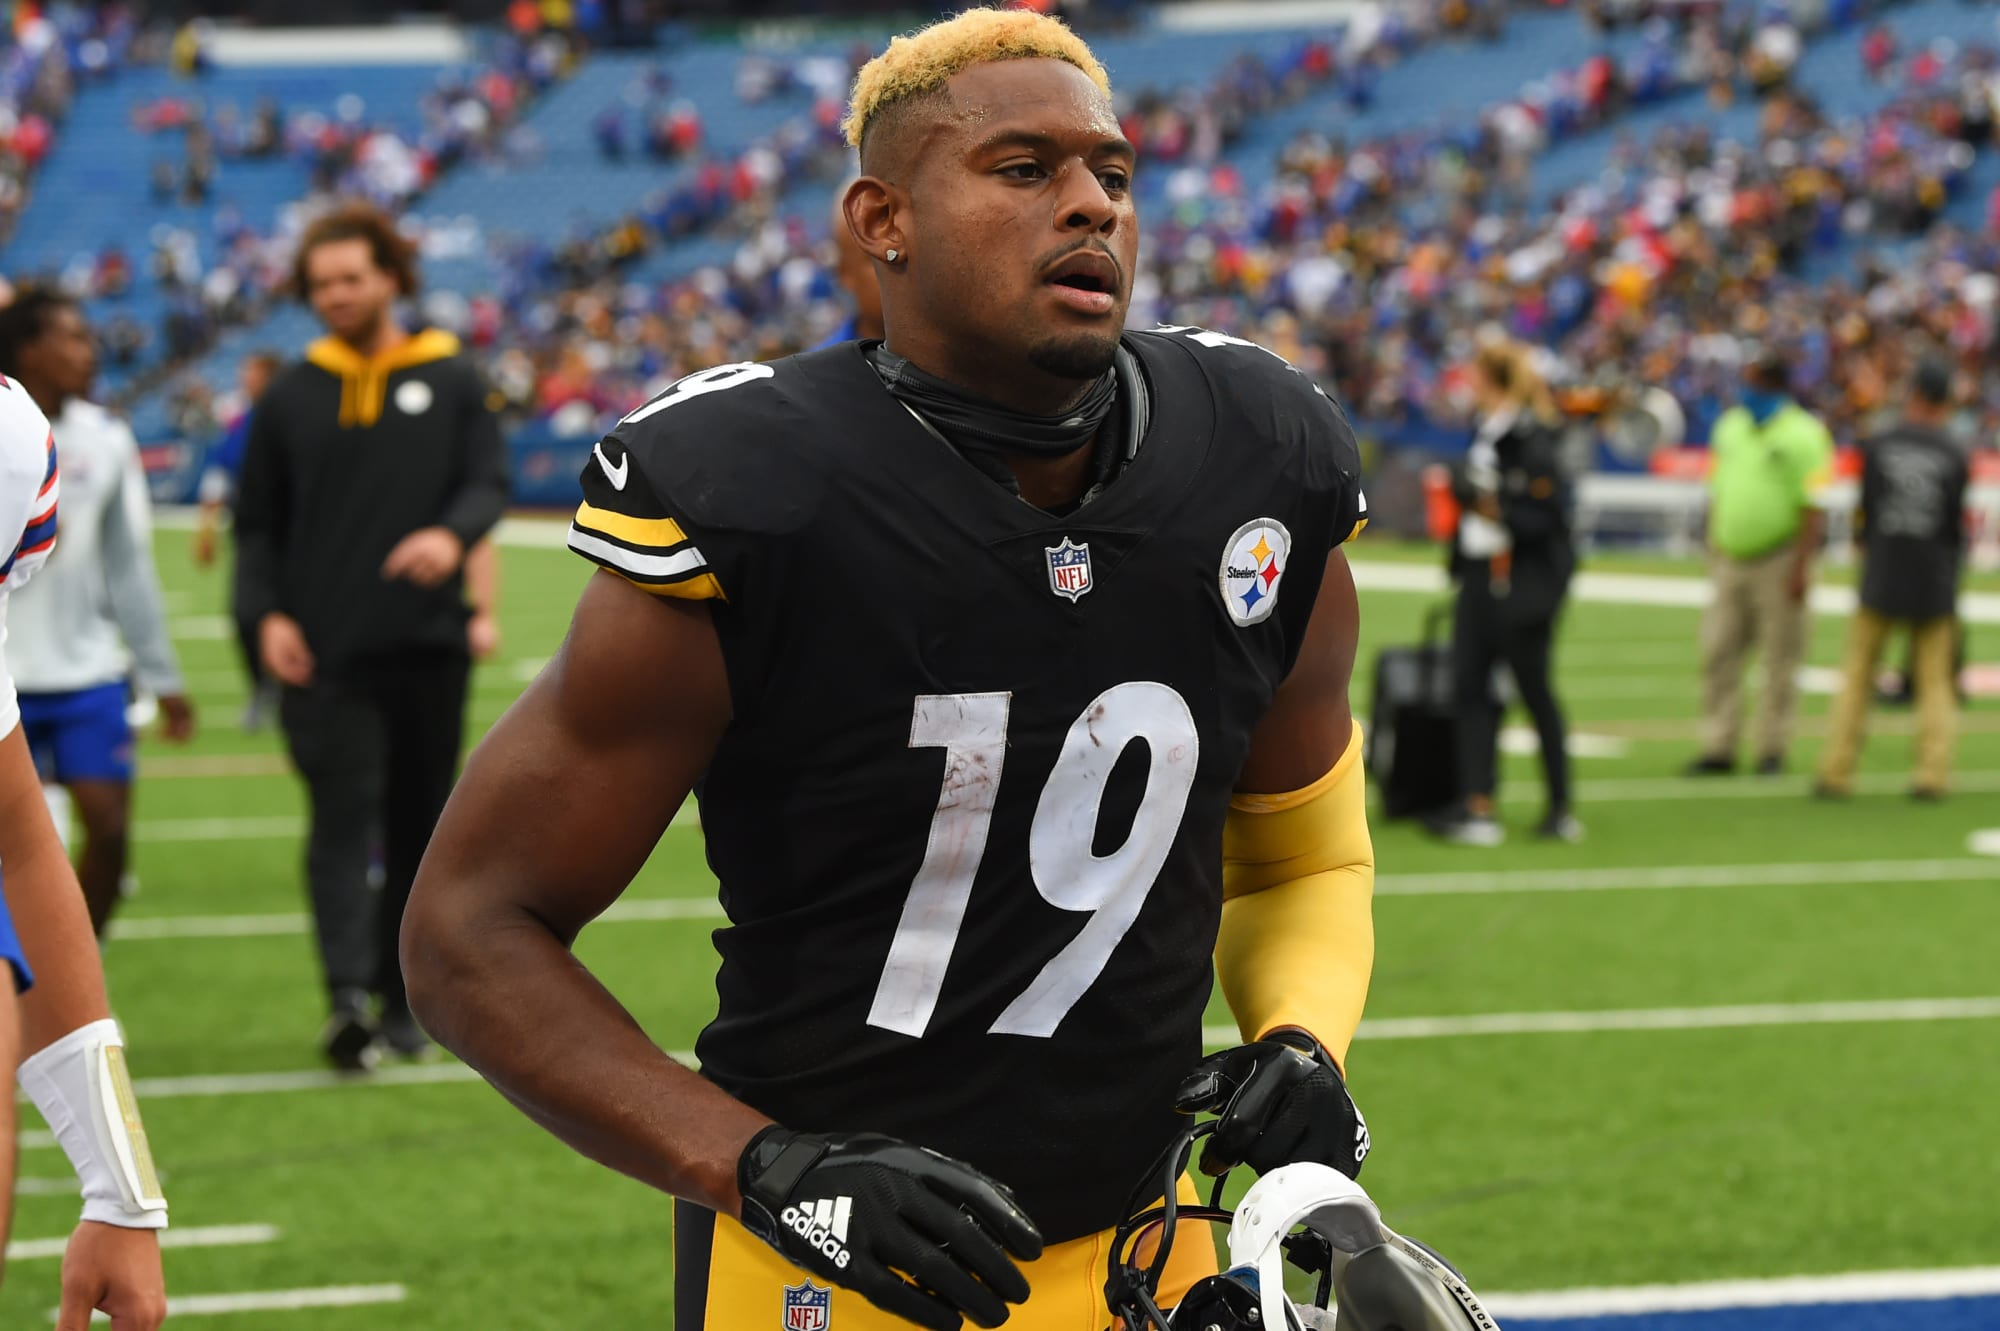 Are the Steelers misusing their wide receivers in 2021?